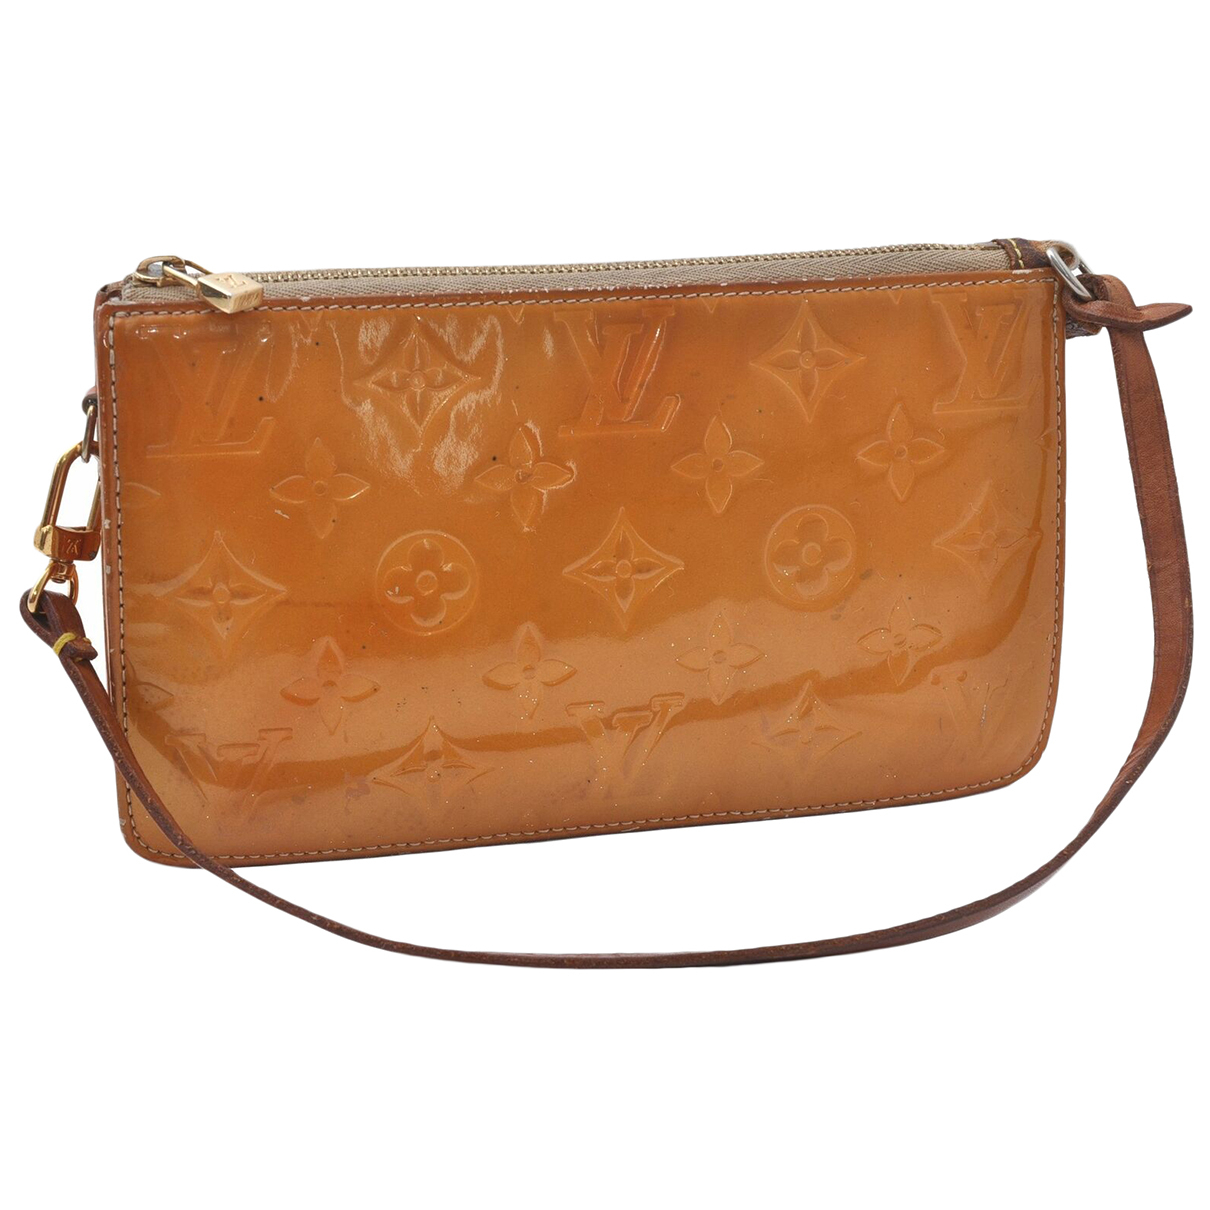 Pochette Lexington de Charol Louis Vuitton